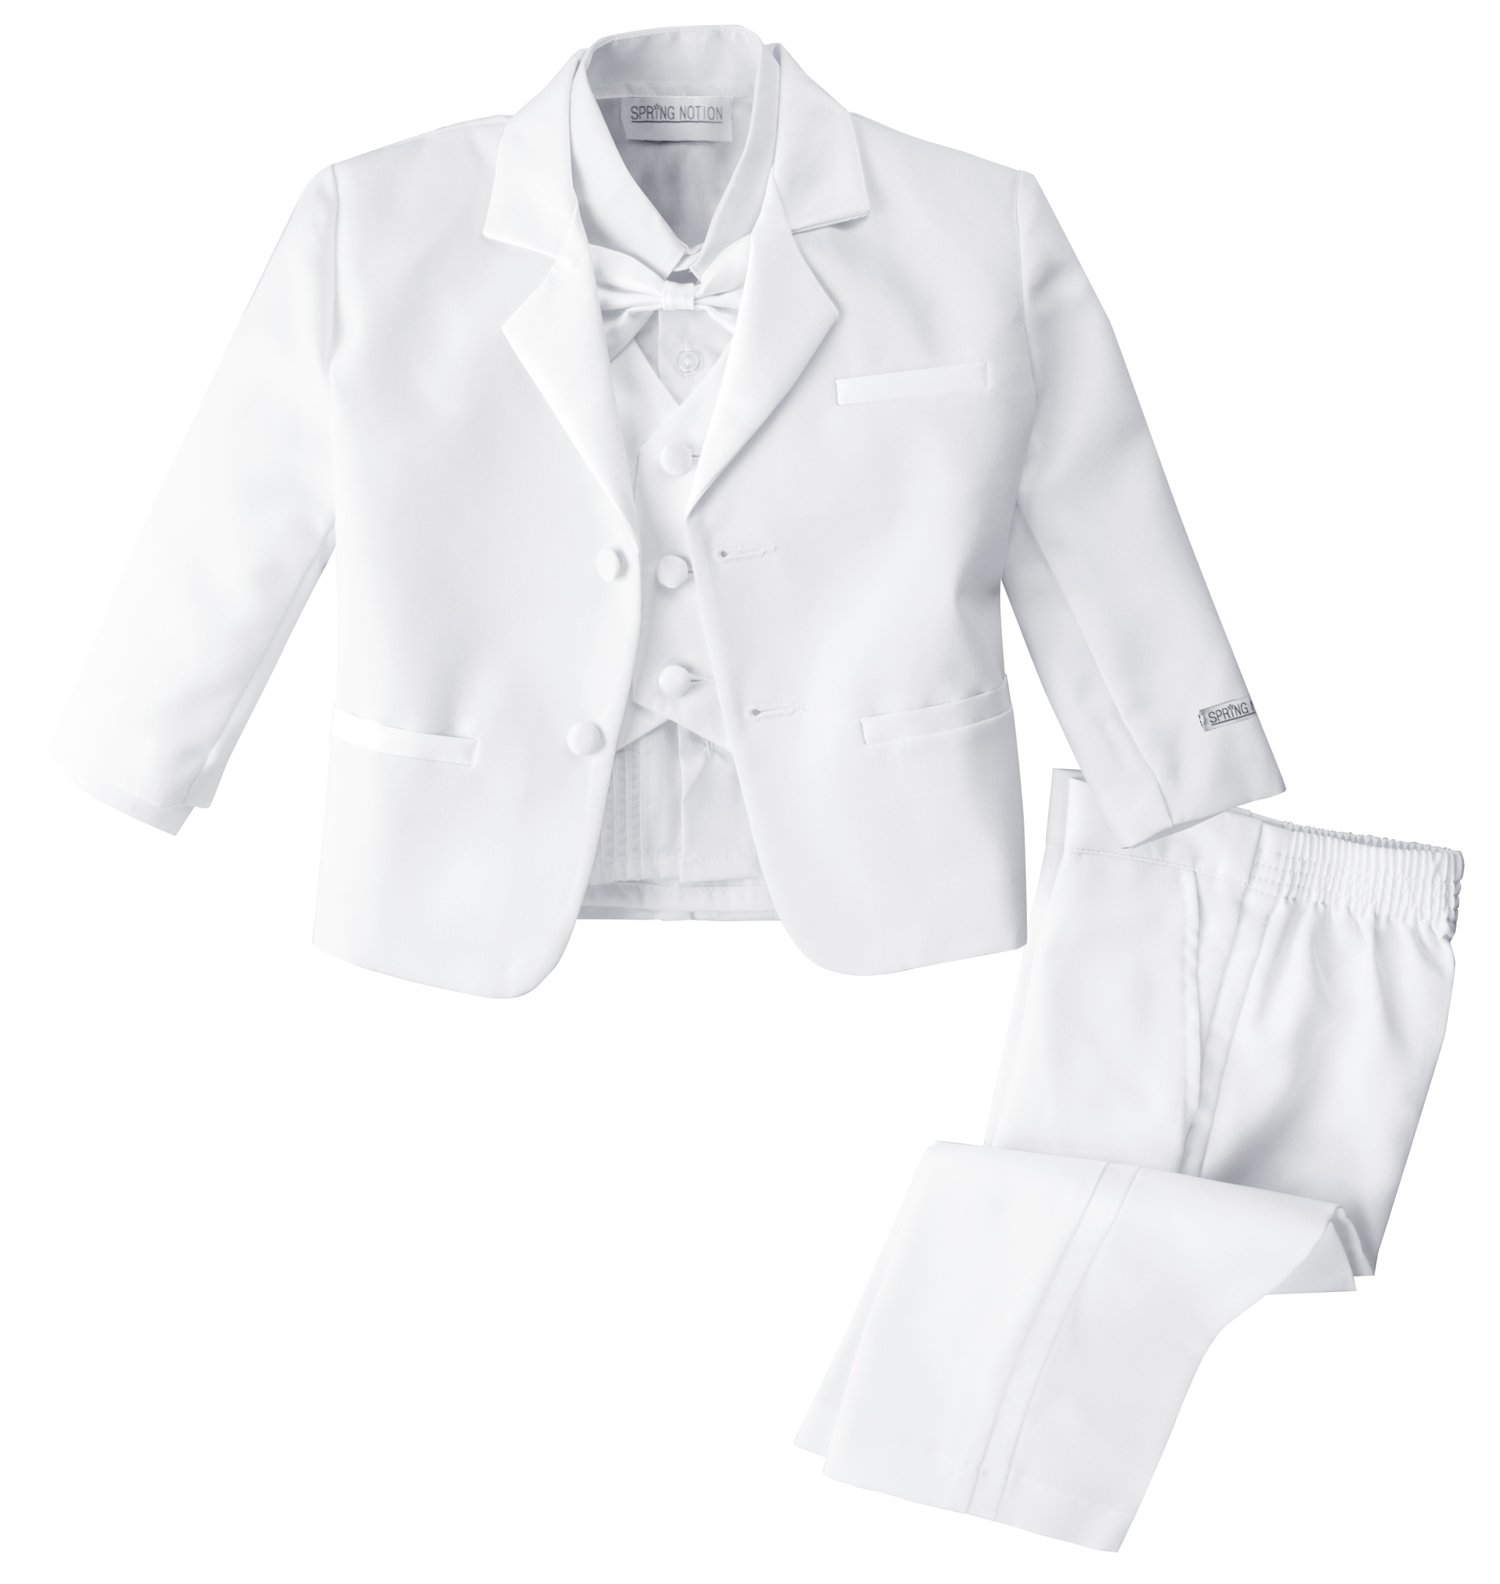 Spring Notion Baby Boys' White Classic Fit Tuxedo Set, No Tail 4T by Spring Notion